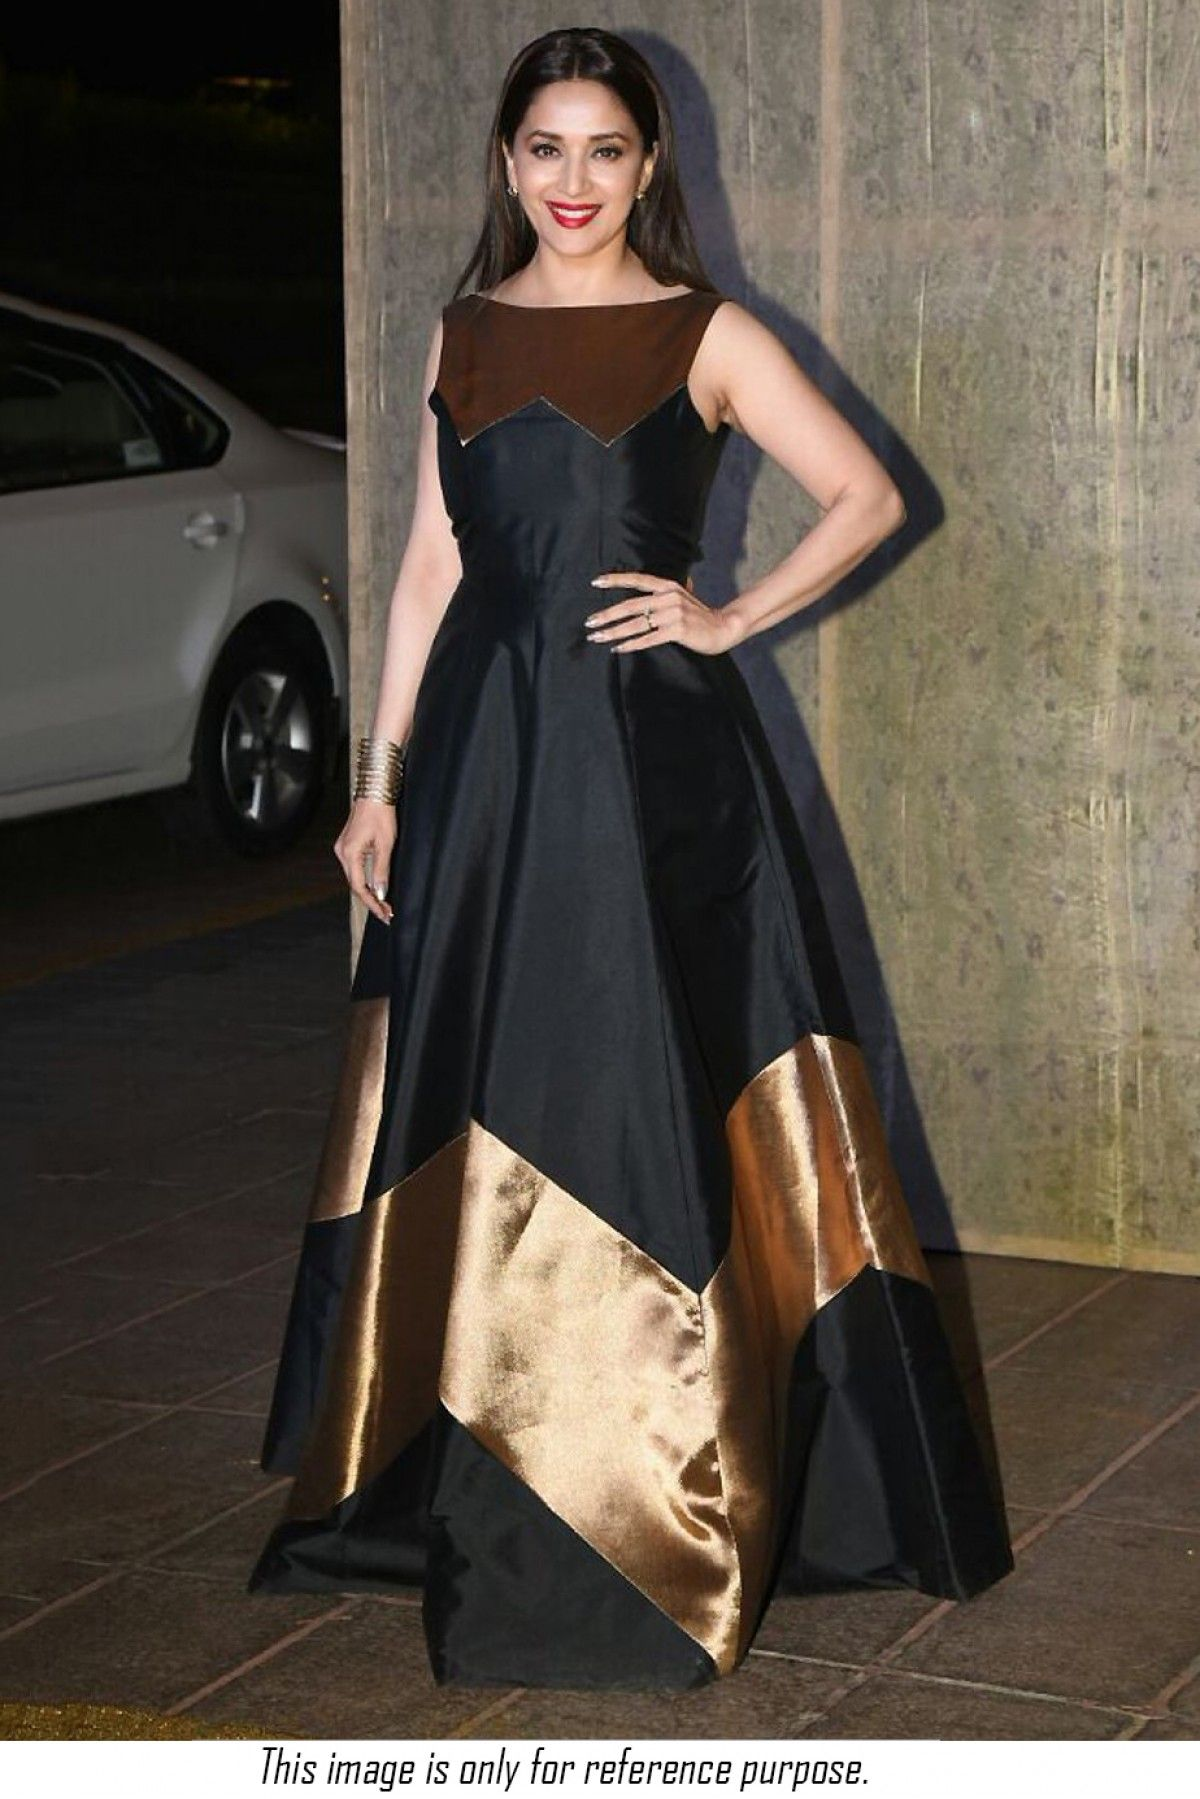 Buy Bollywood Madhuri Dixit Taffeta Silk Party Wear Gown In Black Colour  for women   ninecolours.com. Worldwide Free Shipping Available! 9f4d0fecc